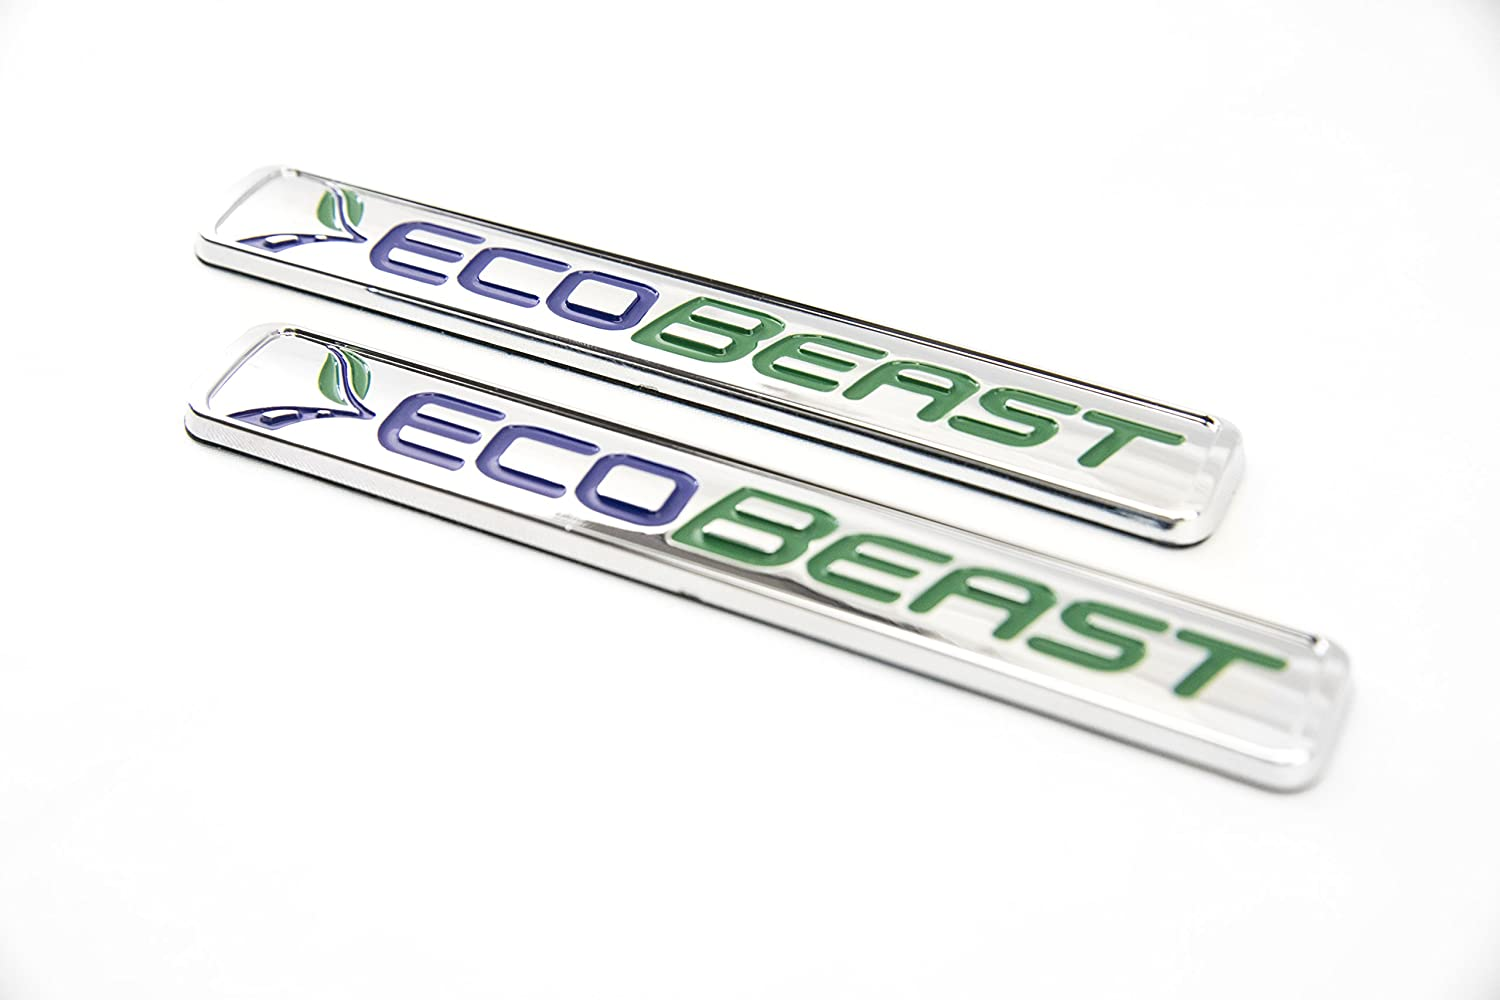 Truck Emblem Warehouse 2 New Chrome 2011-2018 F150 ECOBEAST Badges Emblems Pair Set